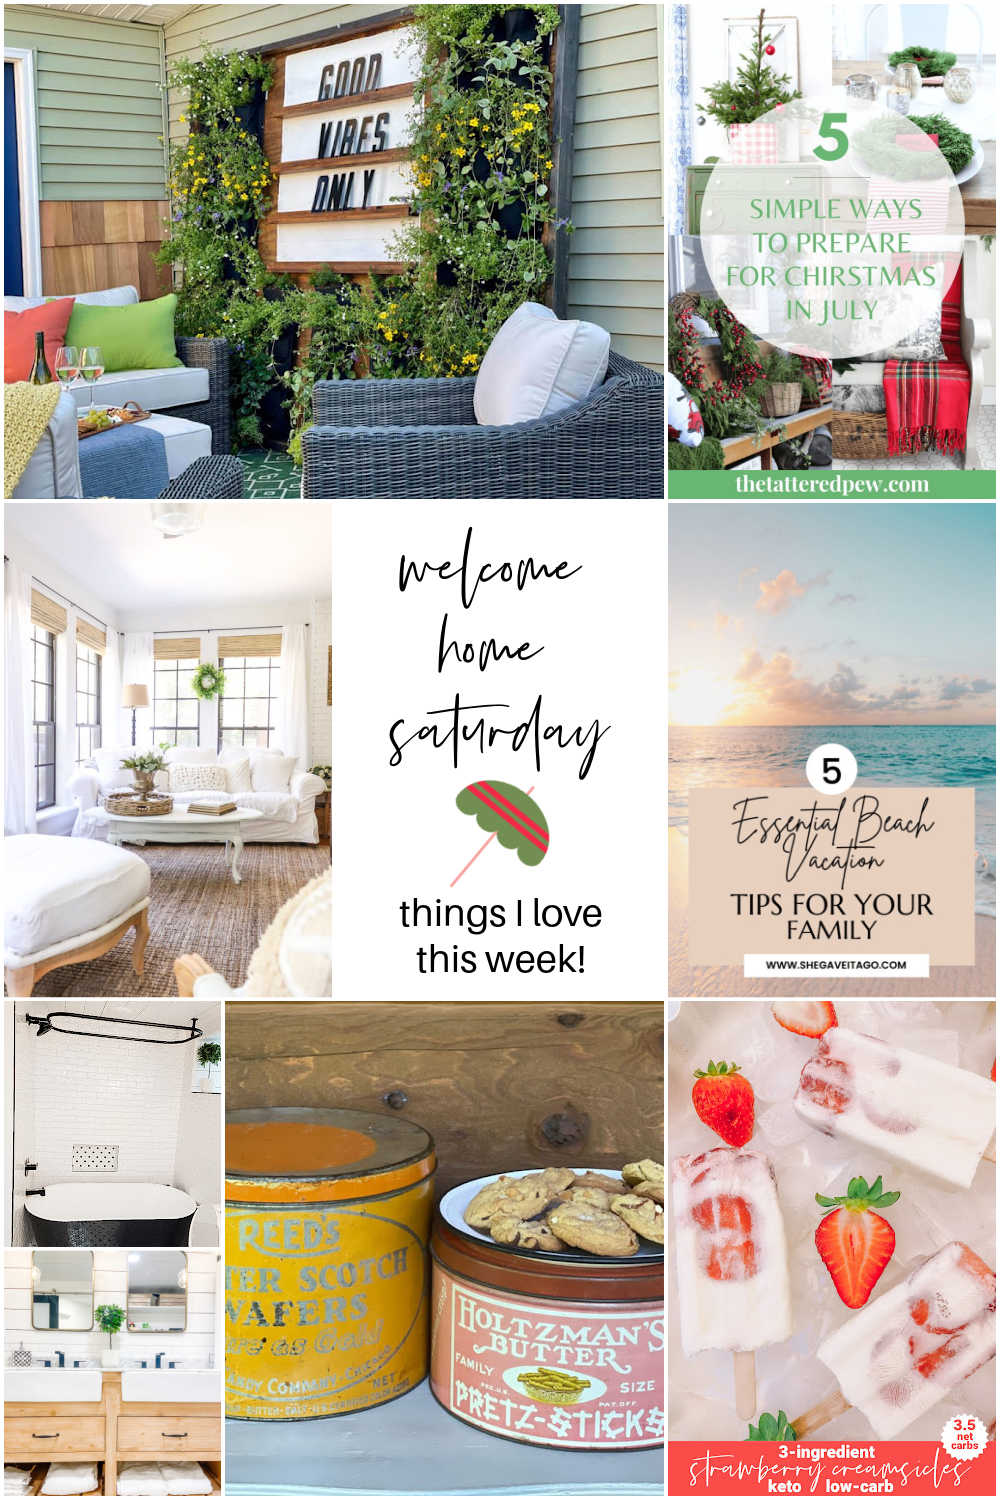 Welcome Home Saturday with Life Unfolding. DIY projects, bathroom remodel update and things I love this week for Summer.